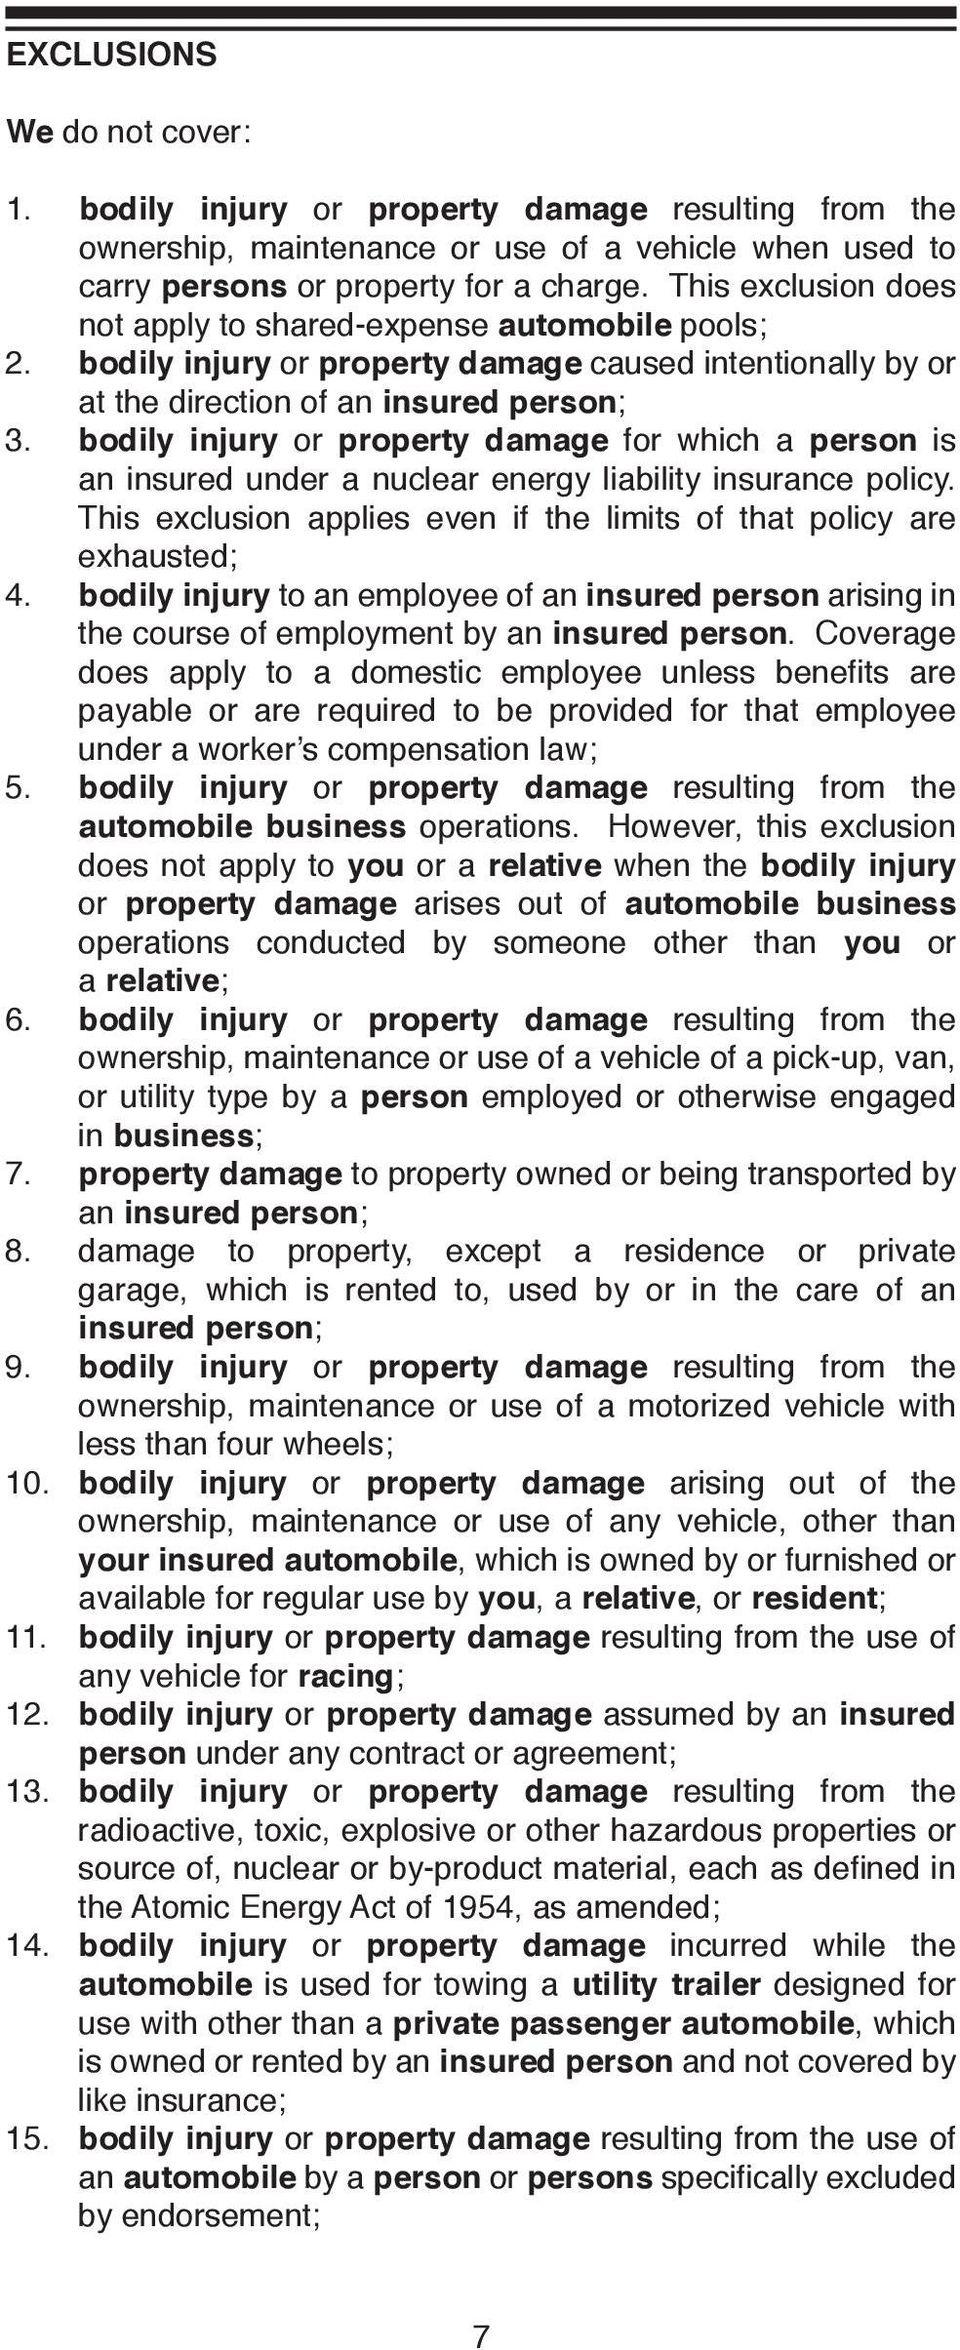 bodily injury or property damage for which a person is an insured under a nuclear energy liability insurance policy. This exclusion applies even if the limits of that policy are exhausted; 4.